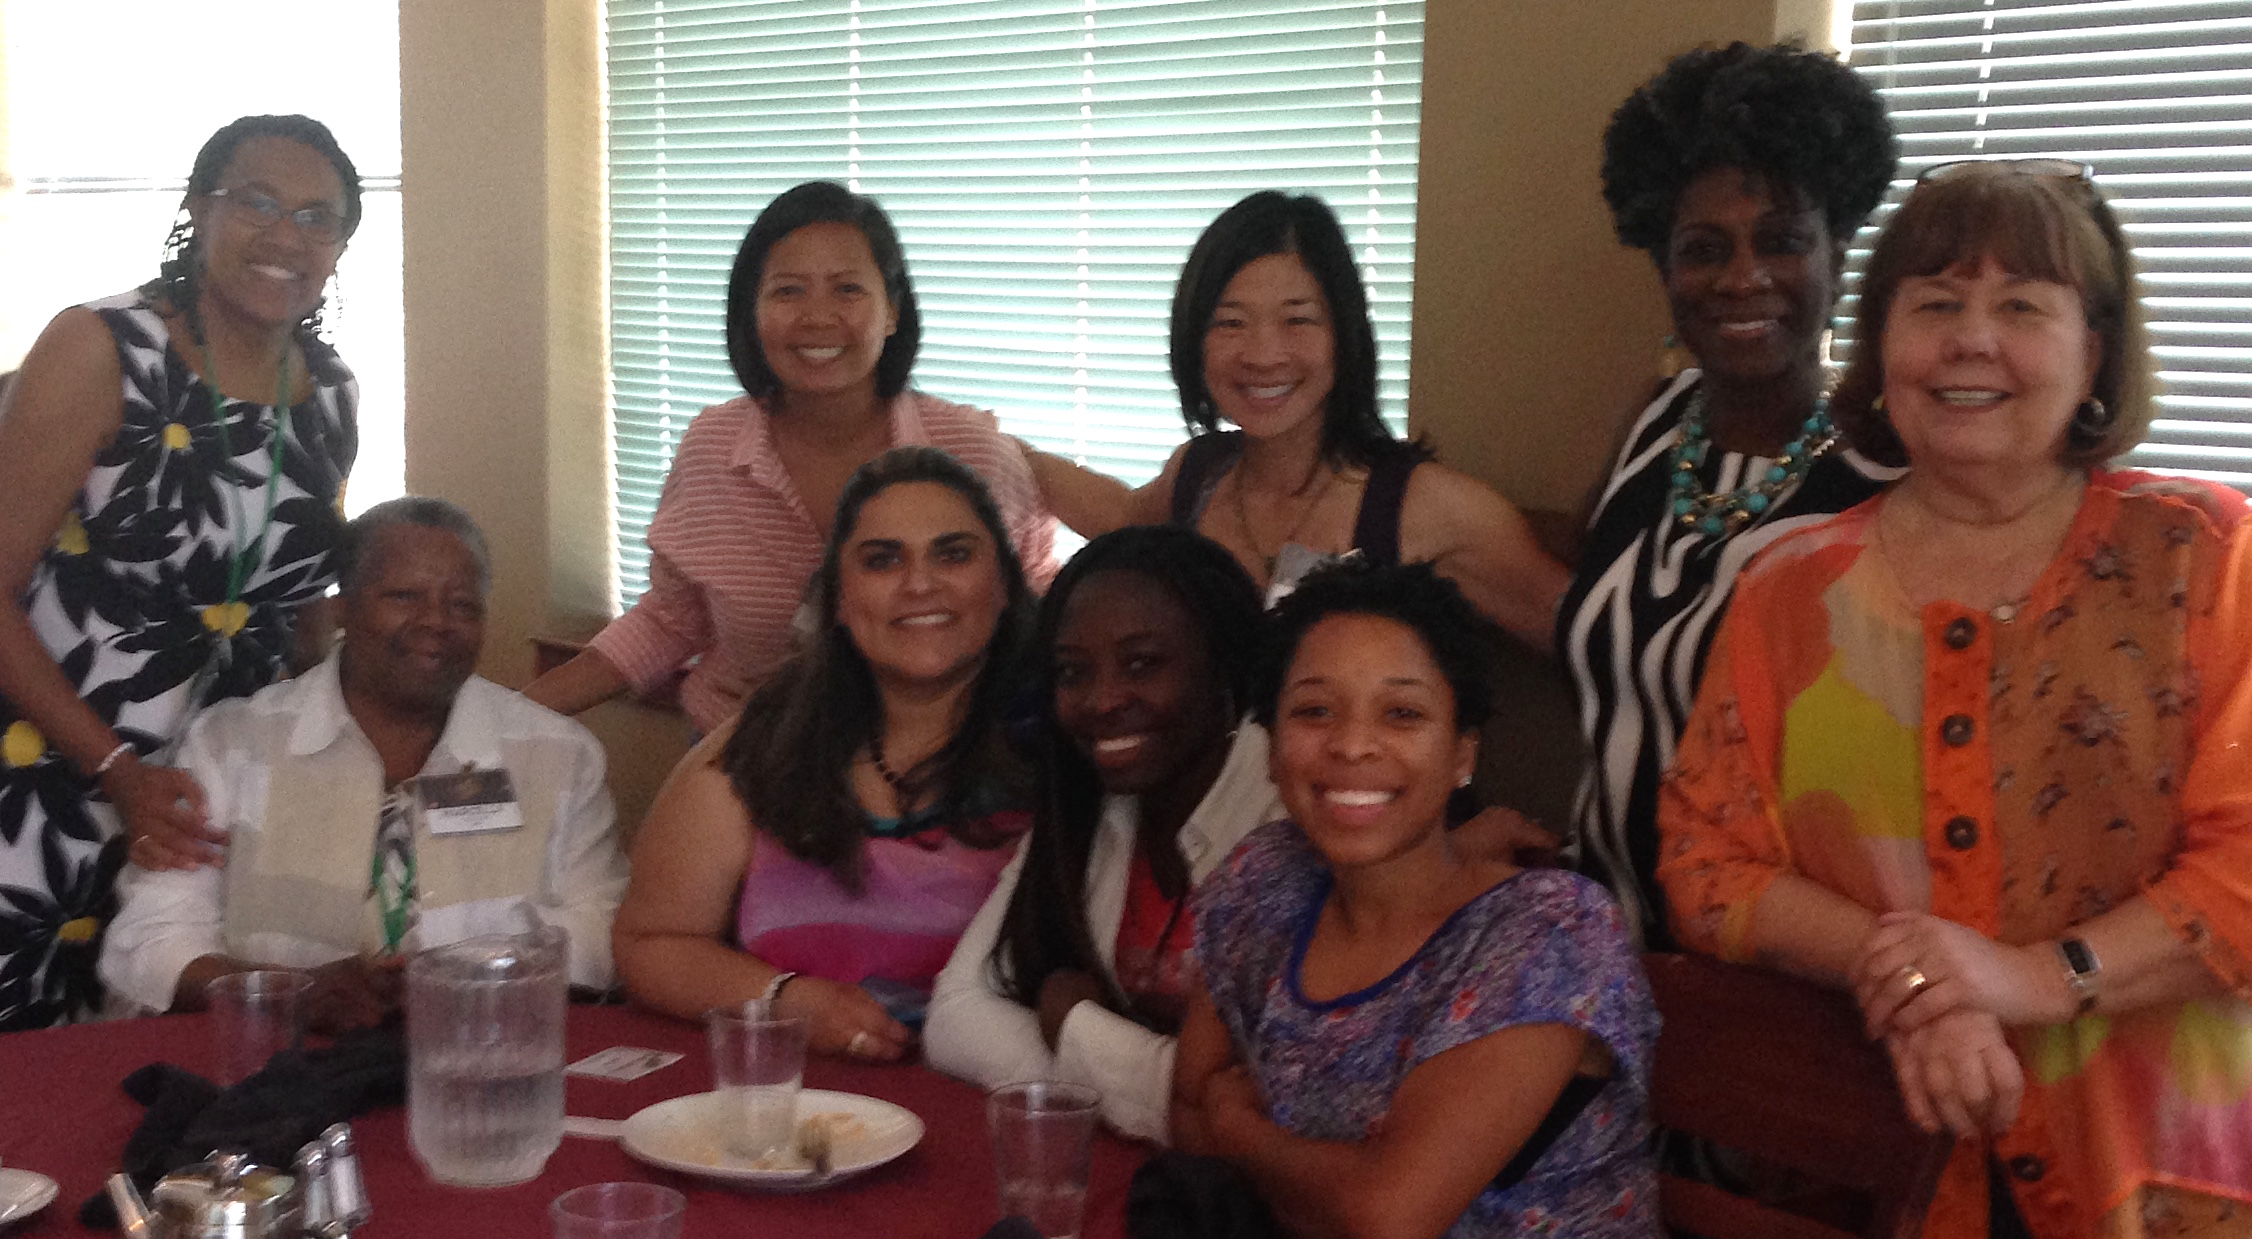 My table at ethnic women leaders lunch